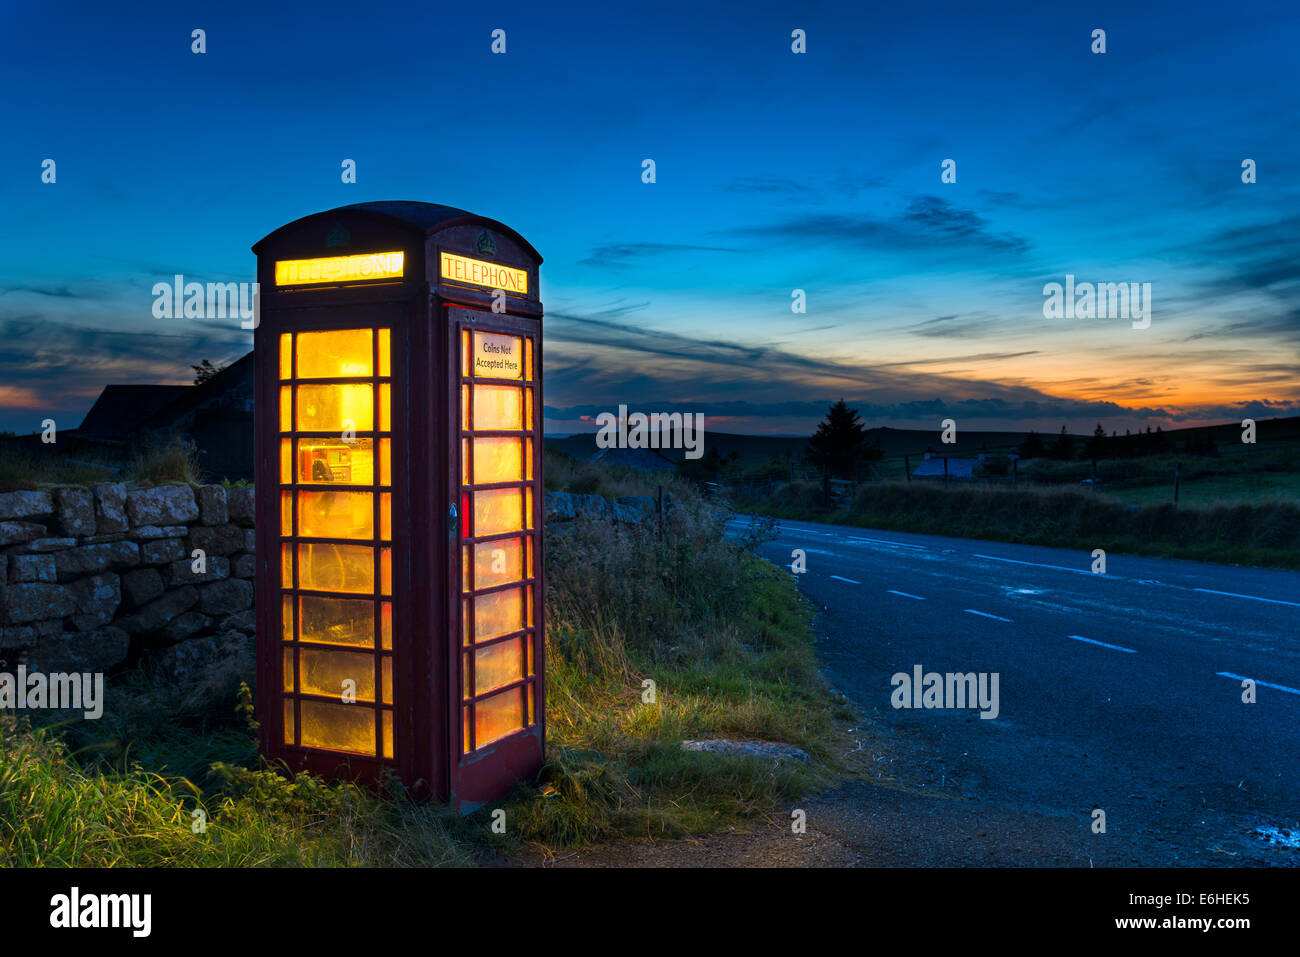 Old red phone box at dusk on a country road in Dartmoor, Devon - Stock Image